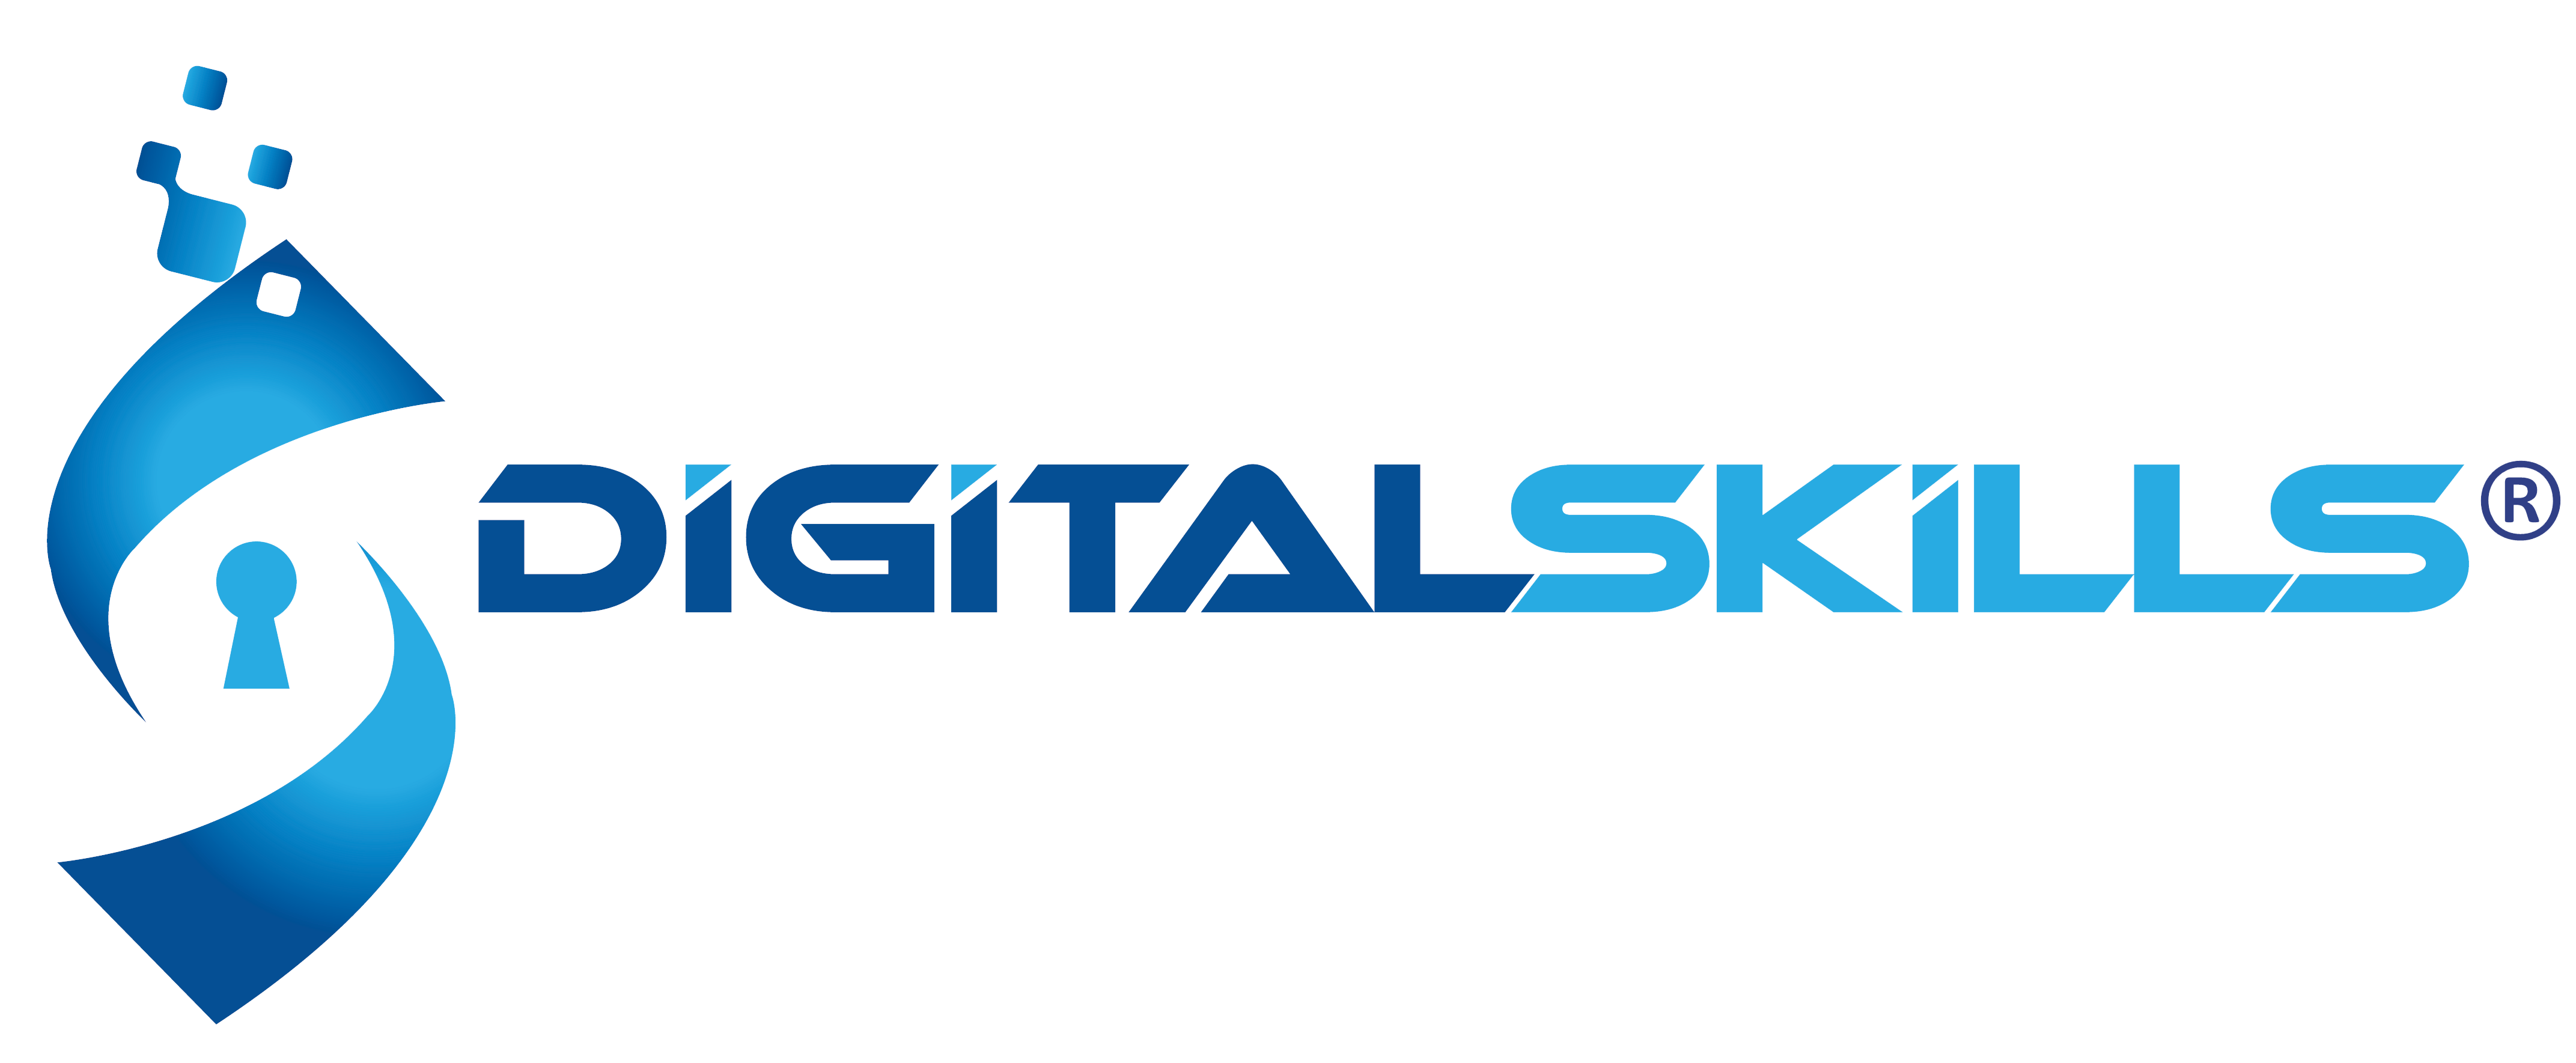 LOGO_DIGITALSKILLS_R